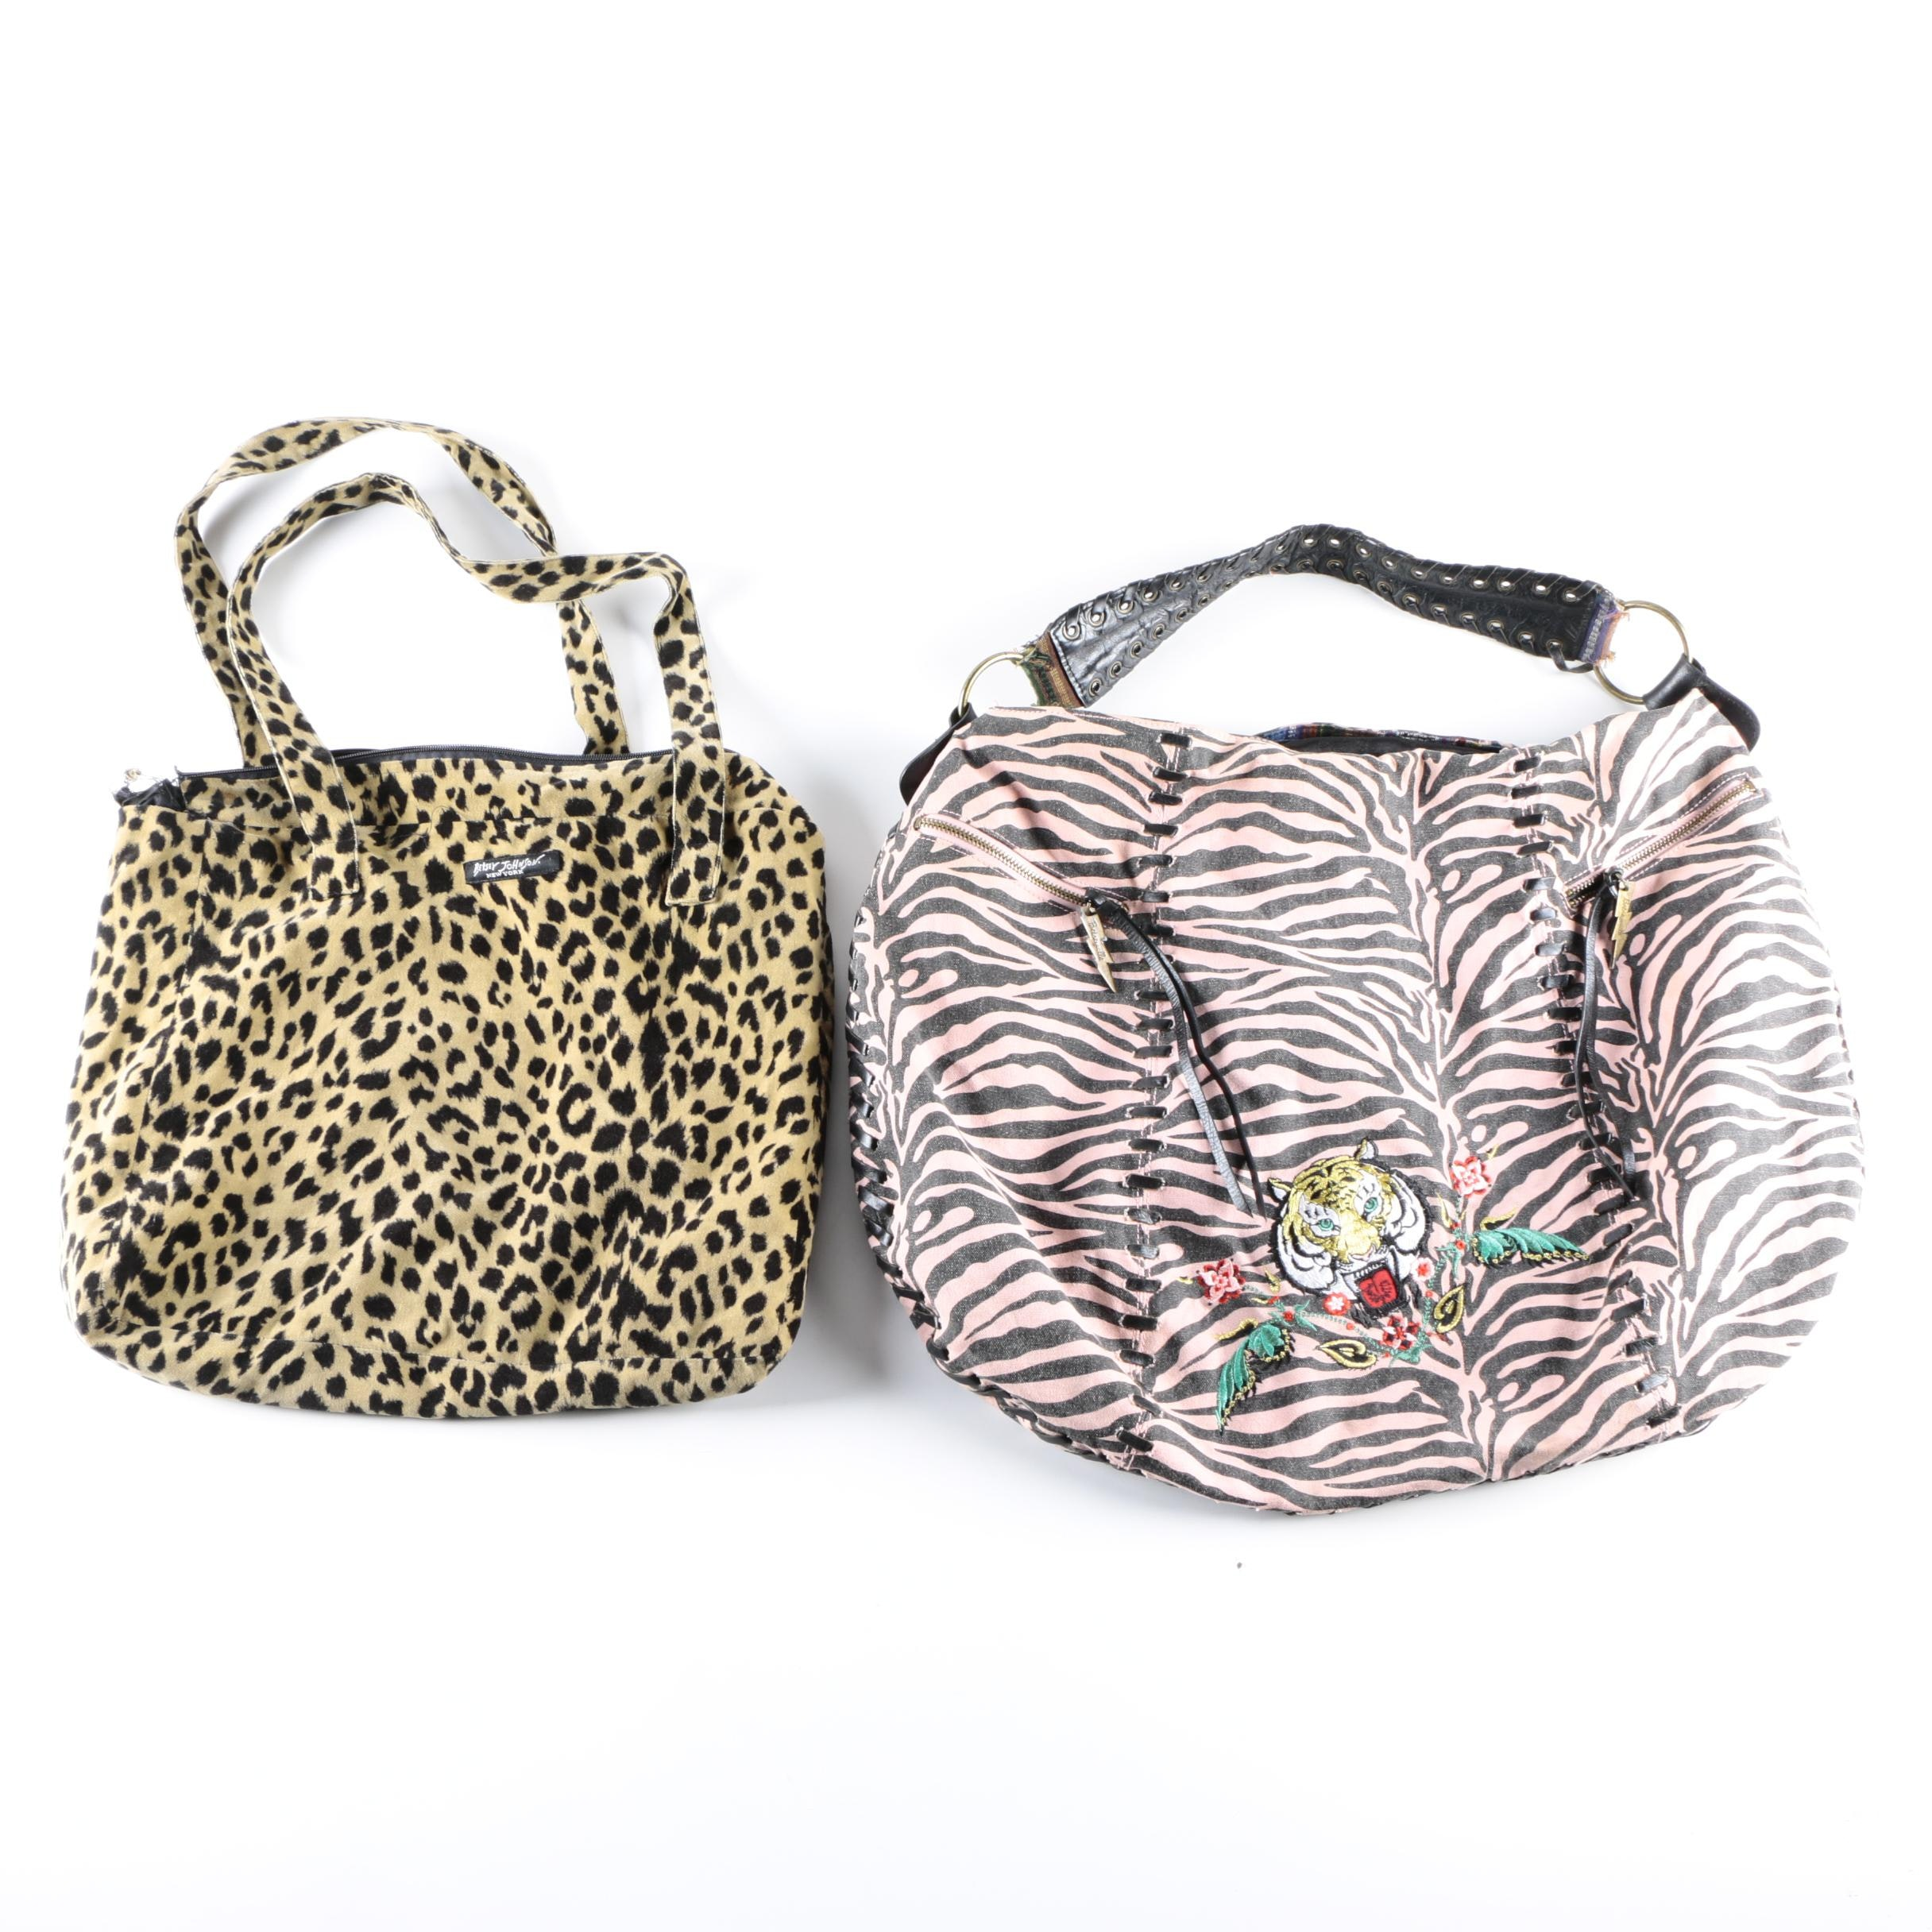 Betsy Johnson Animal Print Handbags Including Betseyville